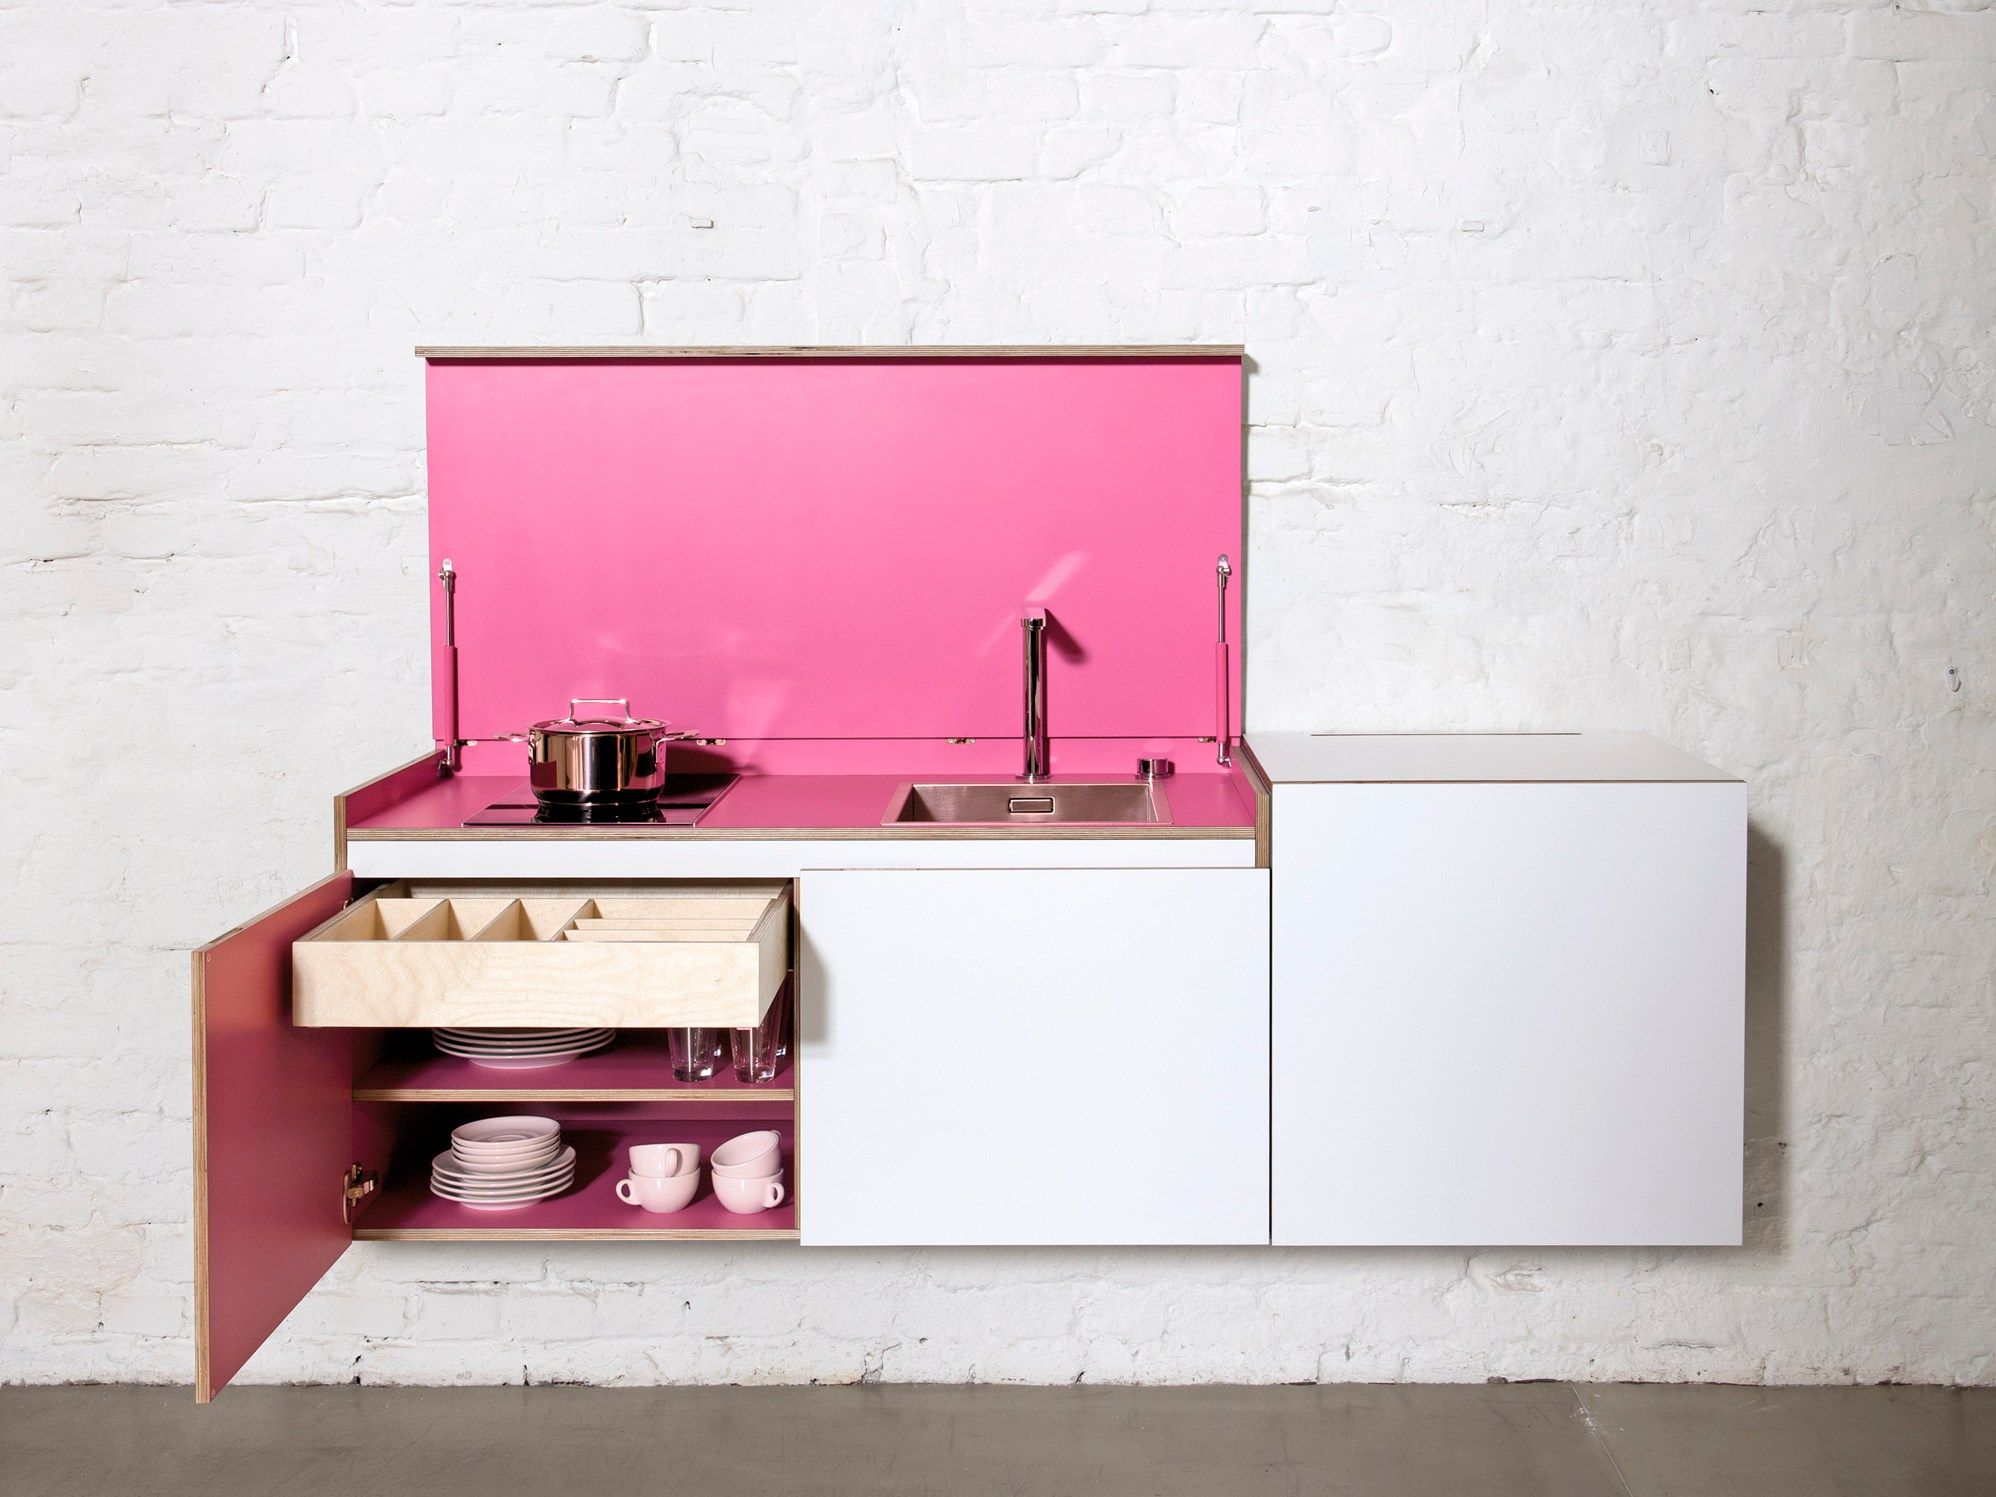 Modular Plywood Mini Kitchen MINIKI By Miniki Design Tobias Schwarzer